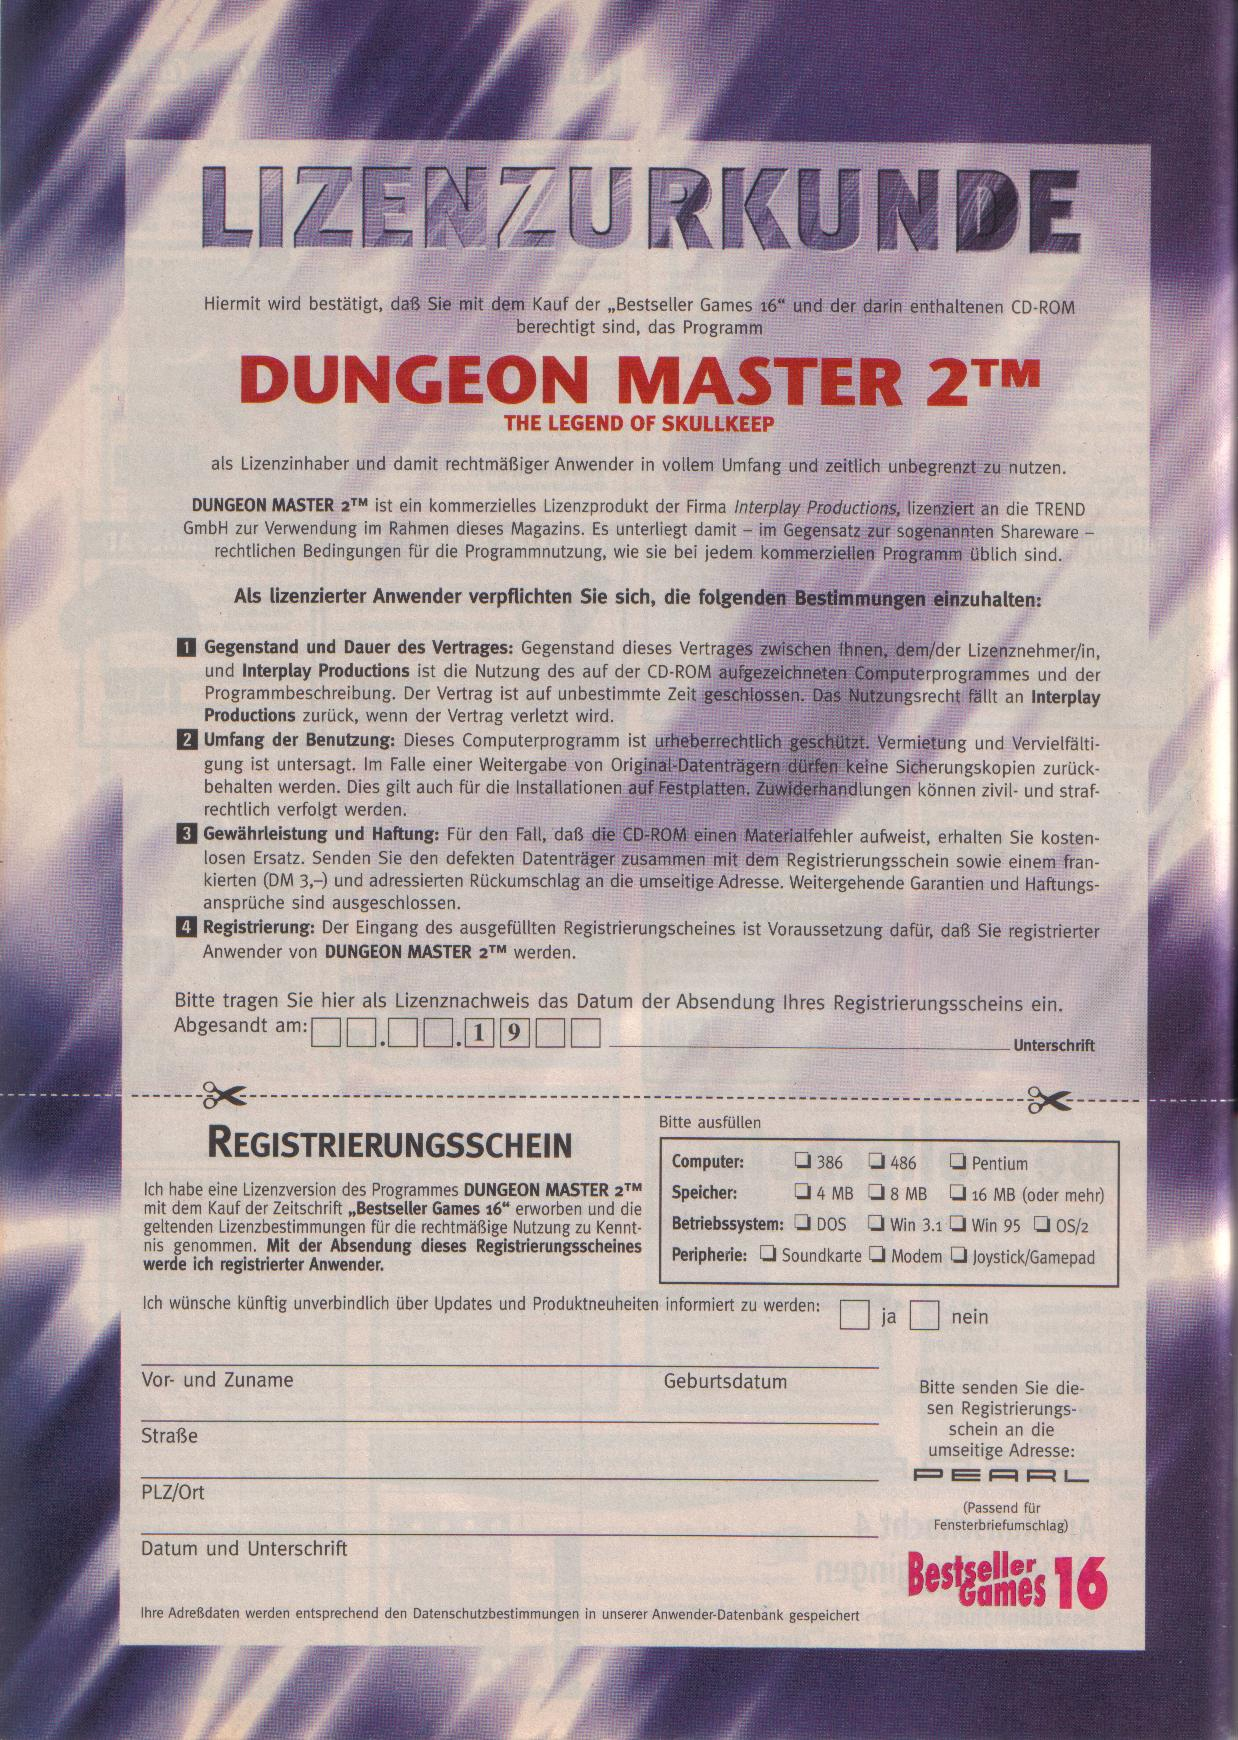 Dungeon Master II for PC (German, Best Seller Games) Page 50